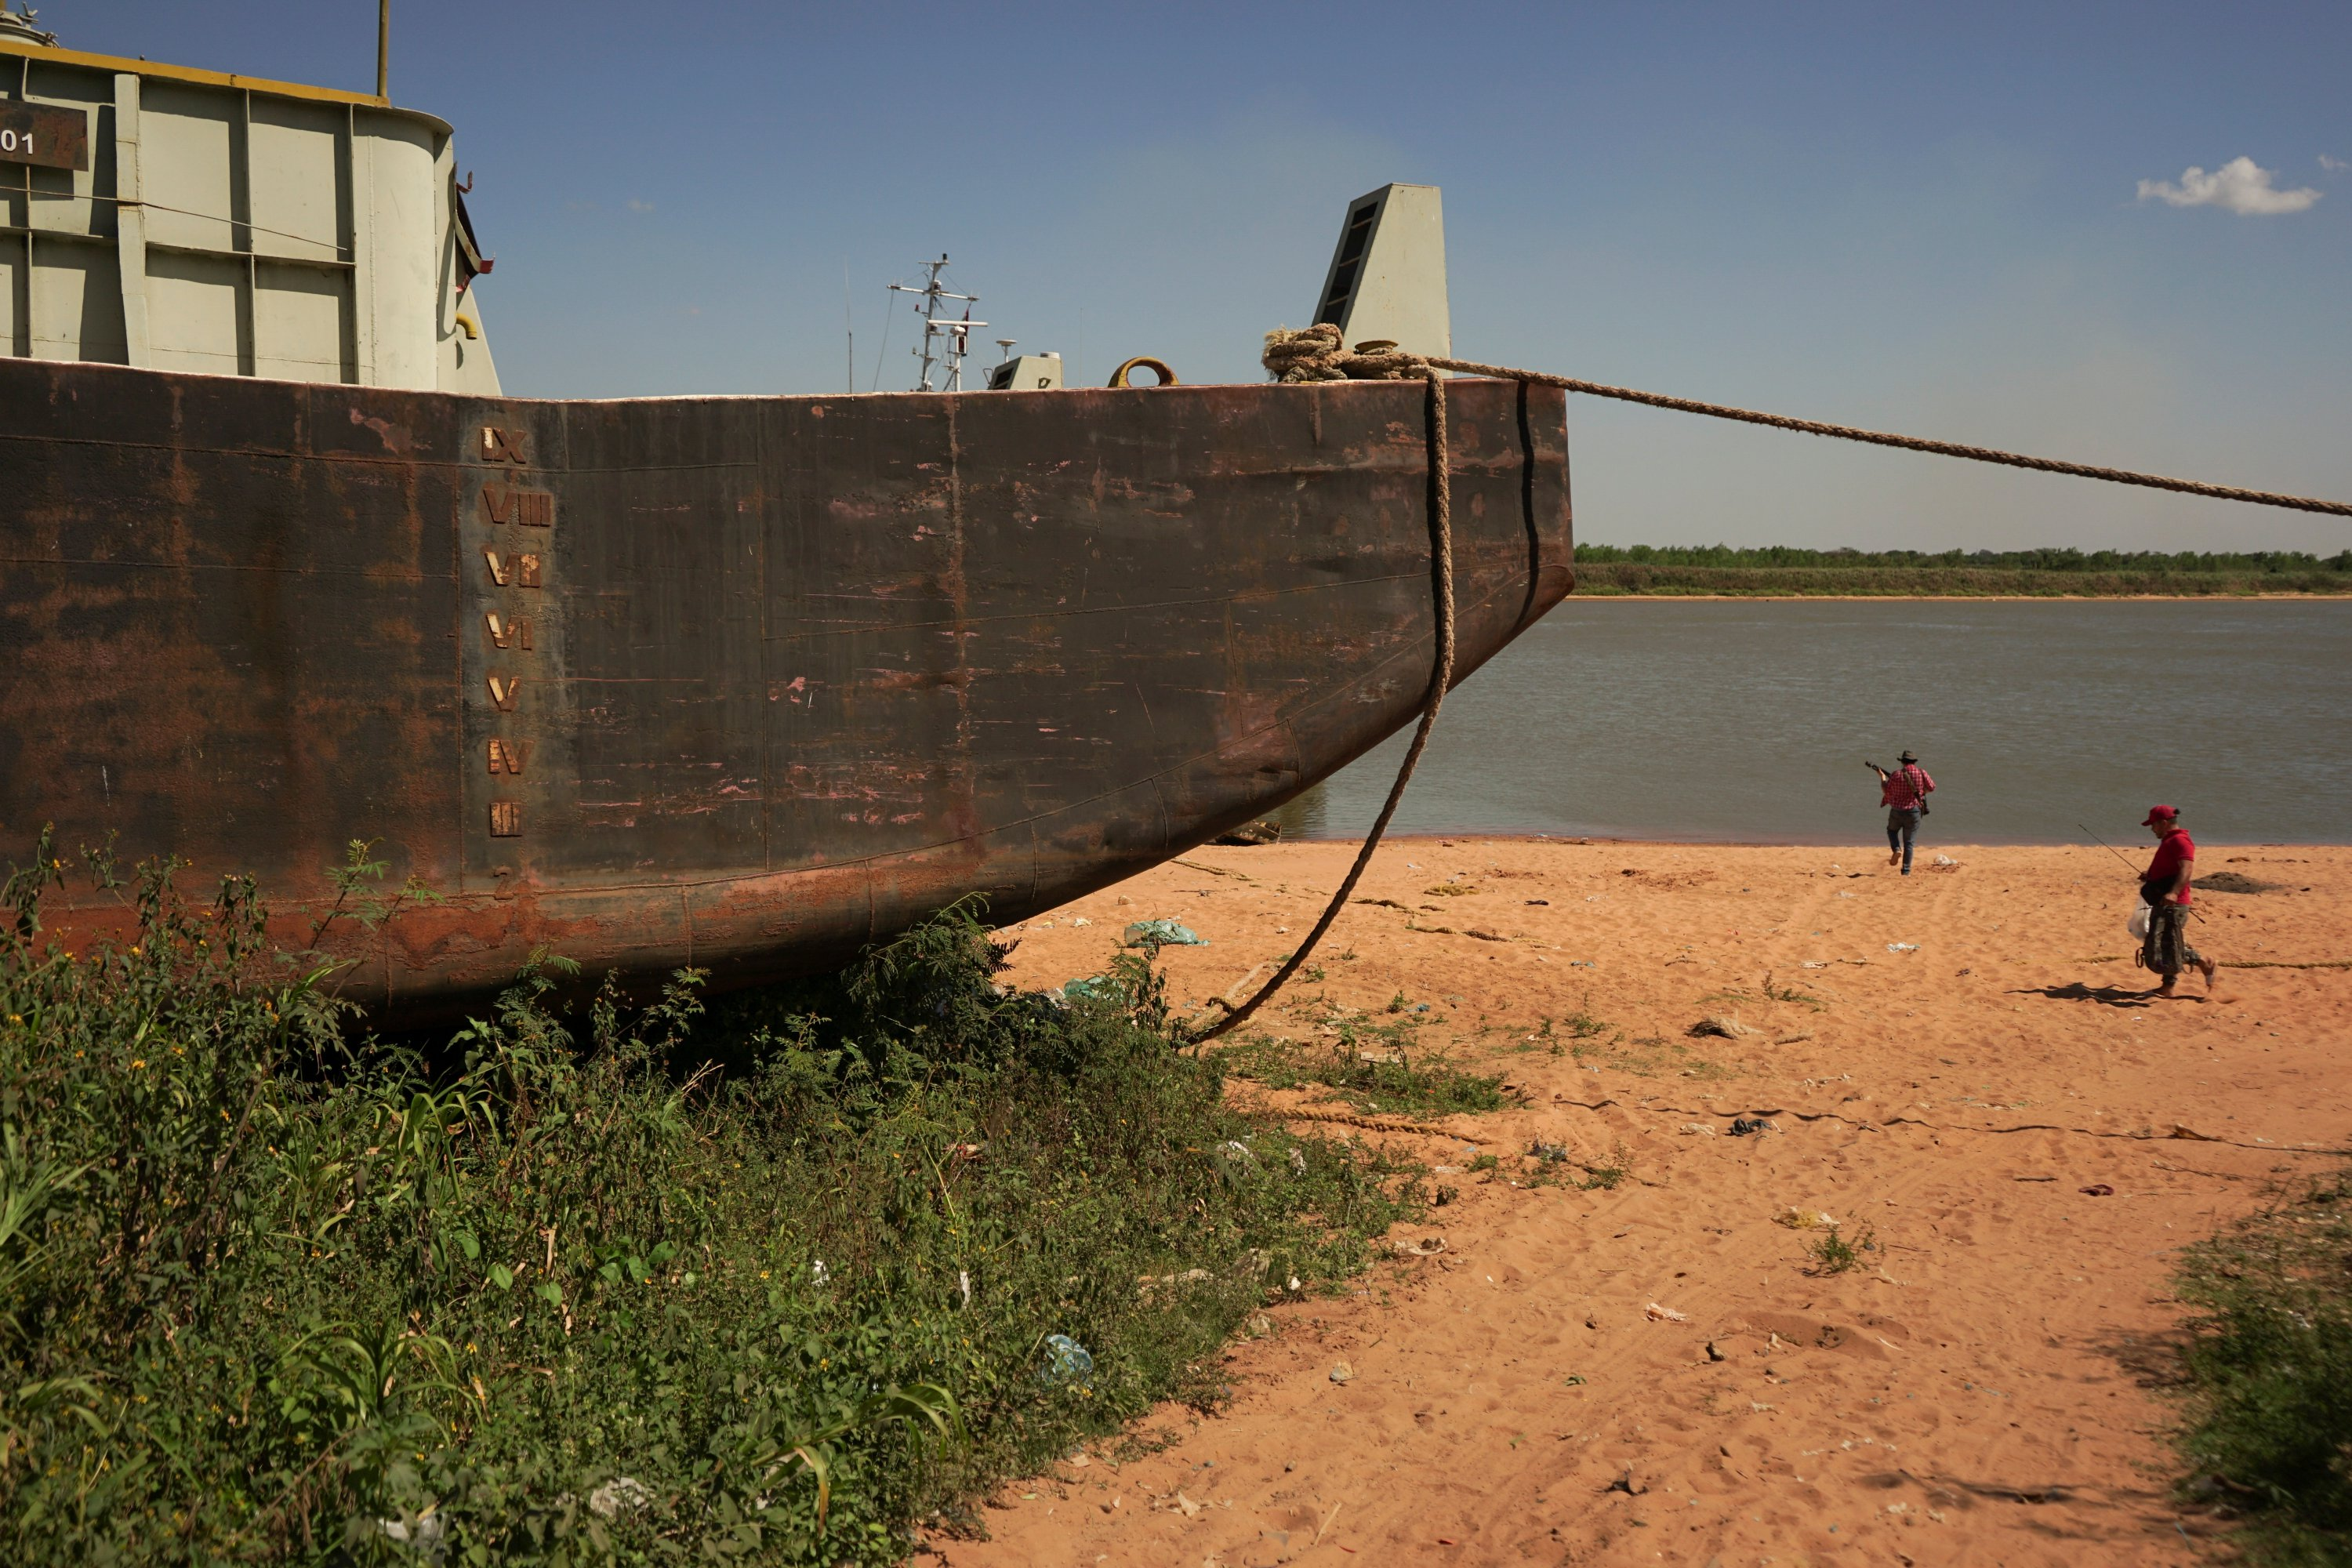 People walk past a stranded barge on the shore of the Rio Paraguay (Paraguay River), which flows down to the Parana River, as the lack of rain in Brazil, where the river originates, has brought water levels down, Ypane, Paraguay, Aug. 30, 2021. (REUTERS Photo)